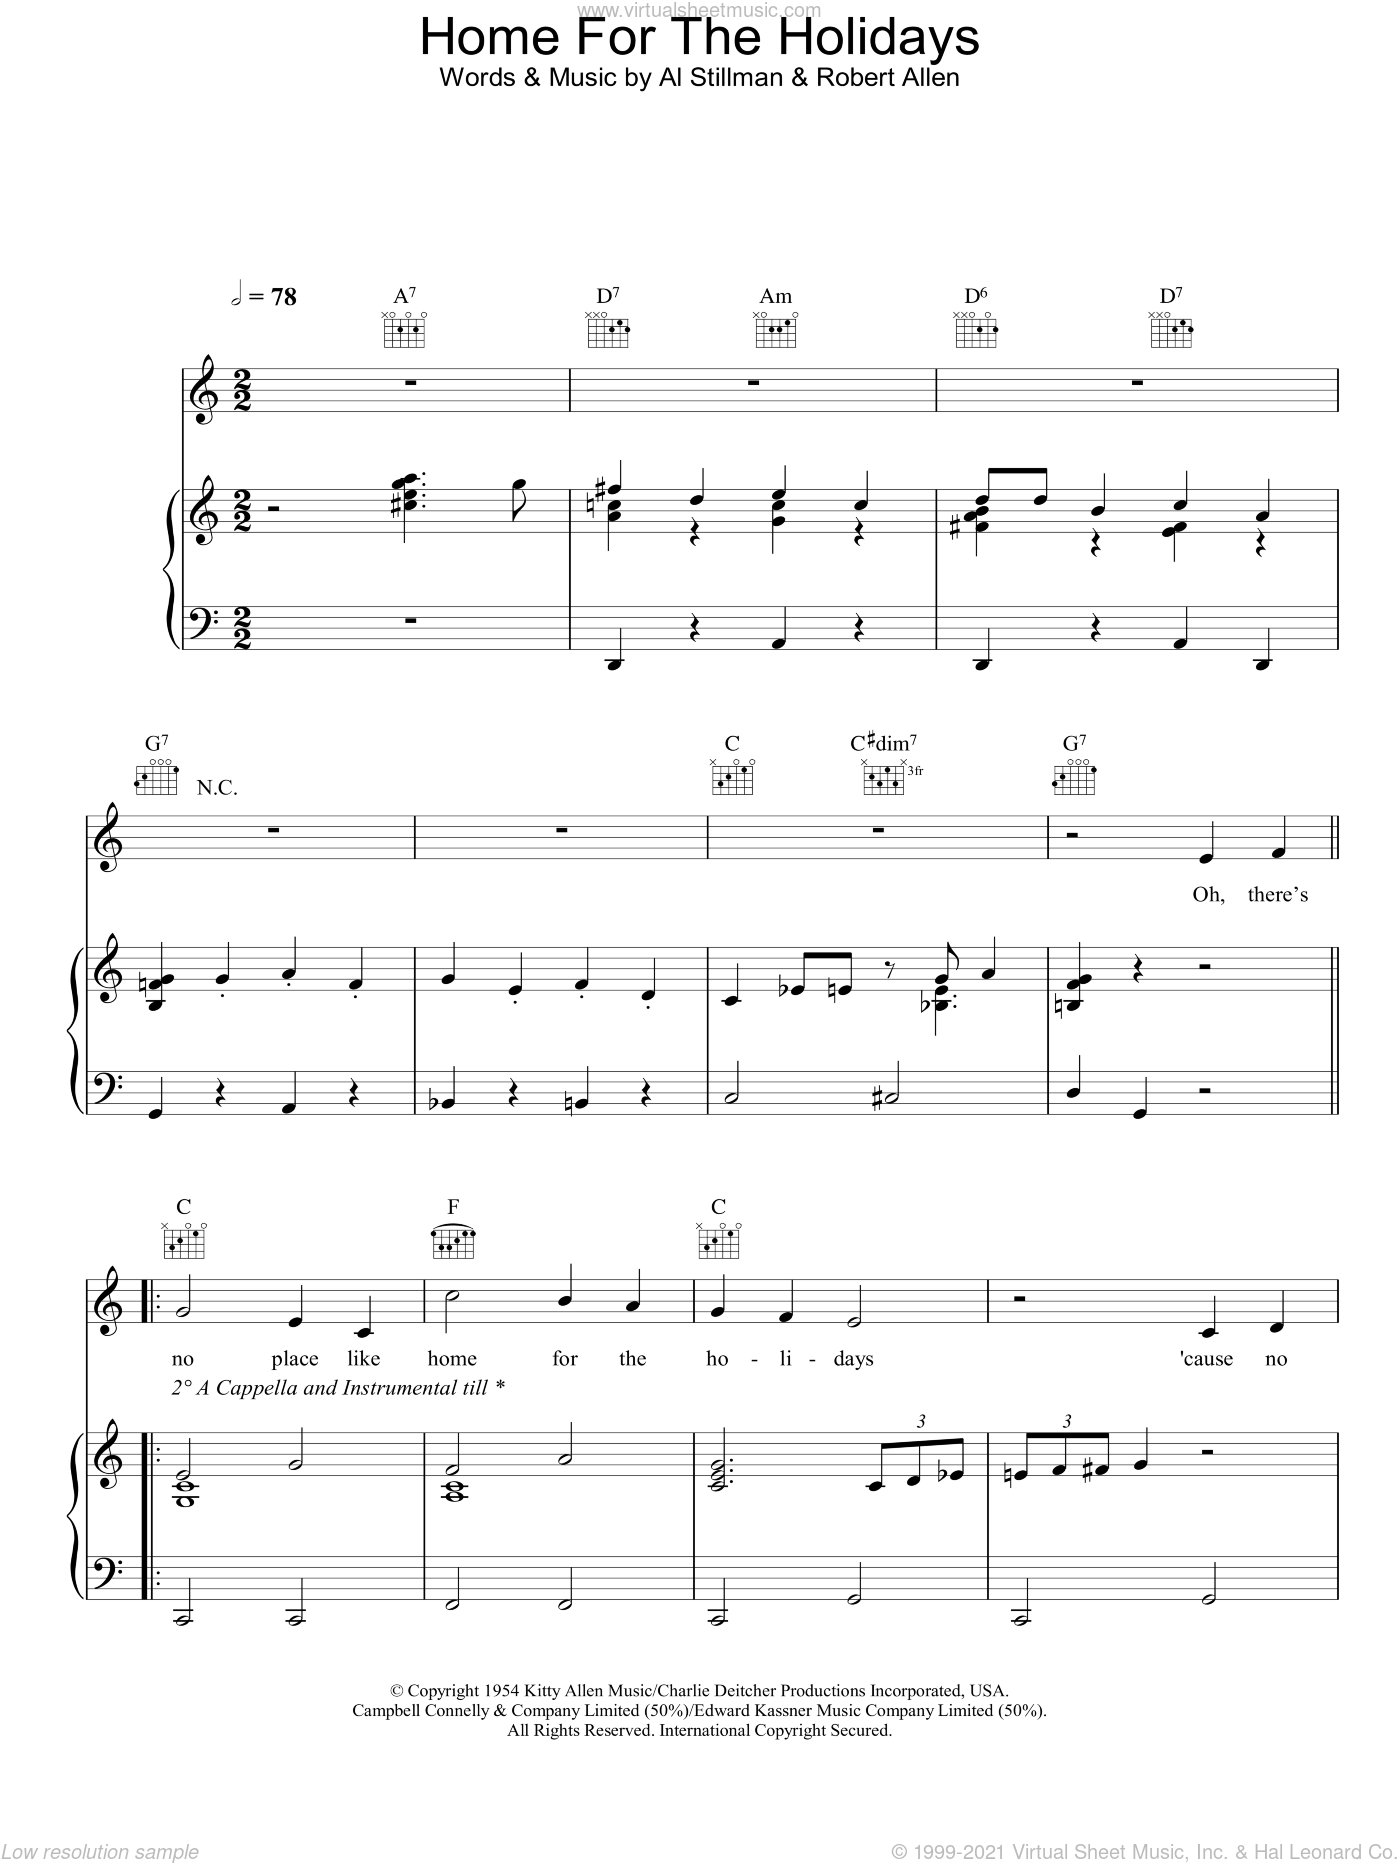 (There's No Place Like) Home For The Holidays sheet music for voice, piano or guitar by Perry Como, Al Stillman and Robert Allen, intermediate skill level